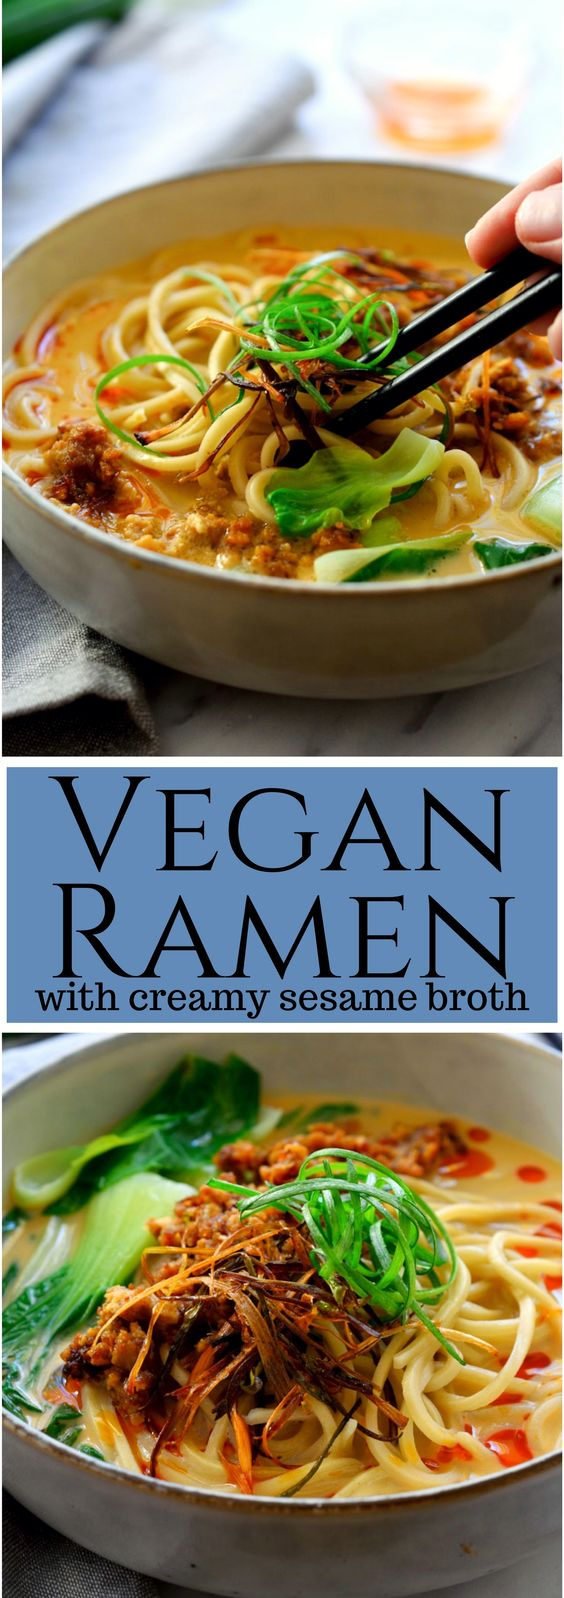 VEGAN RAMEN WITH CREAMY SESAME BROTH